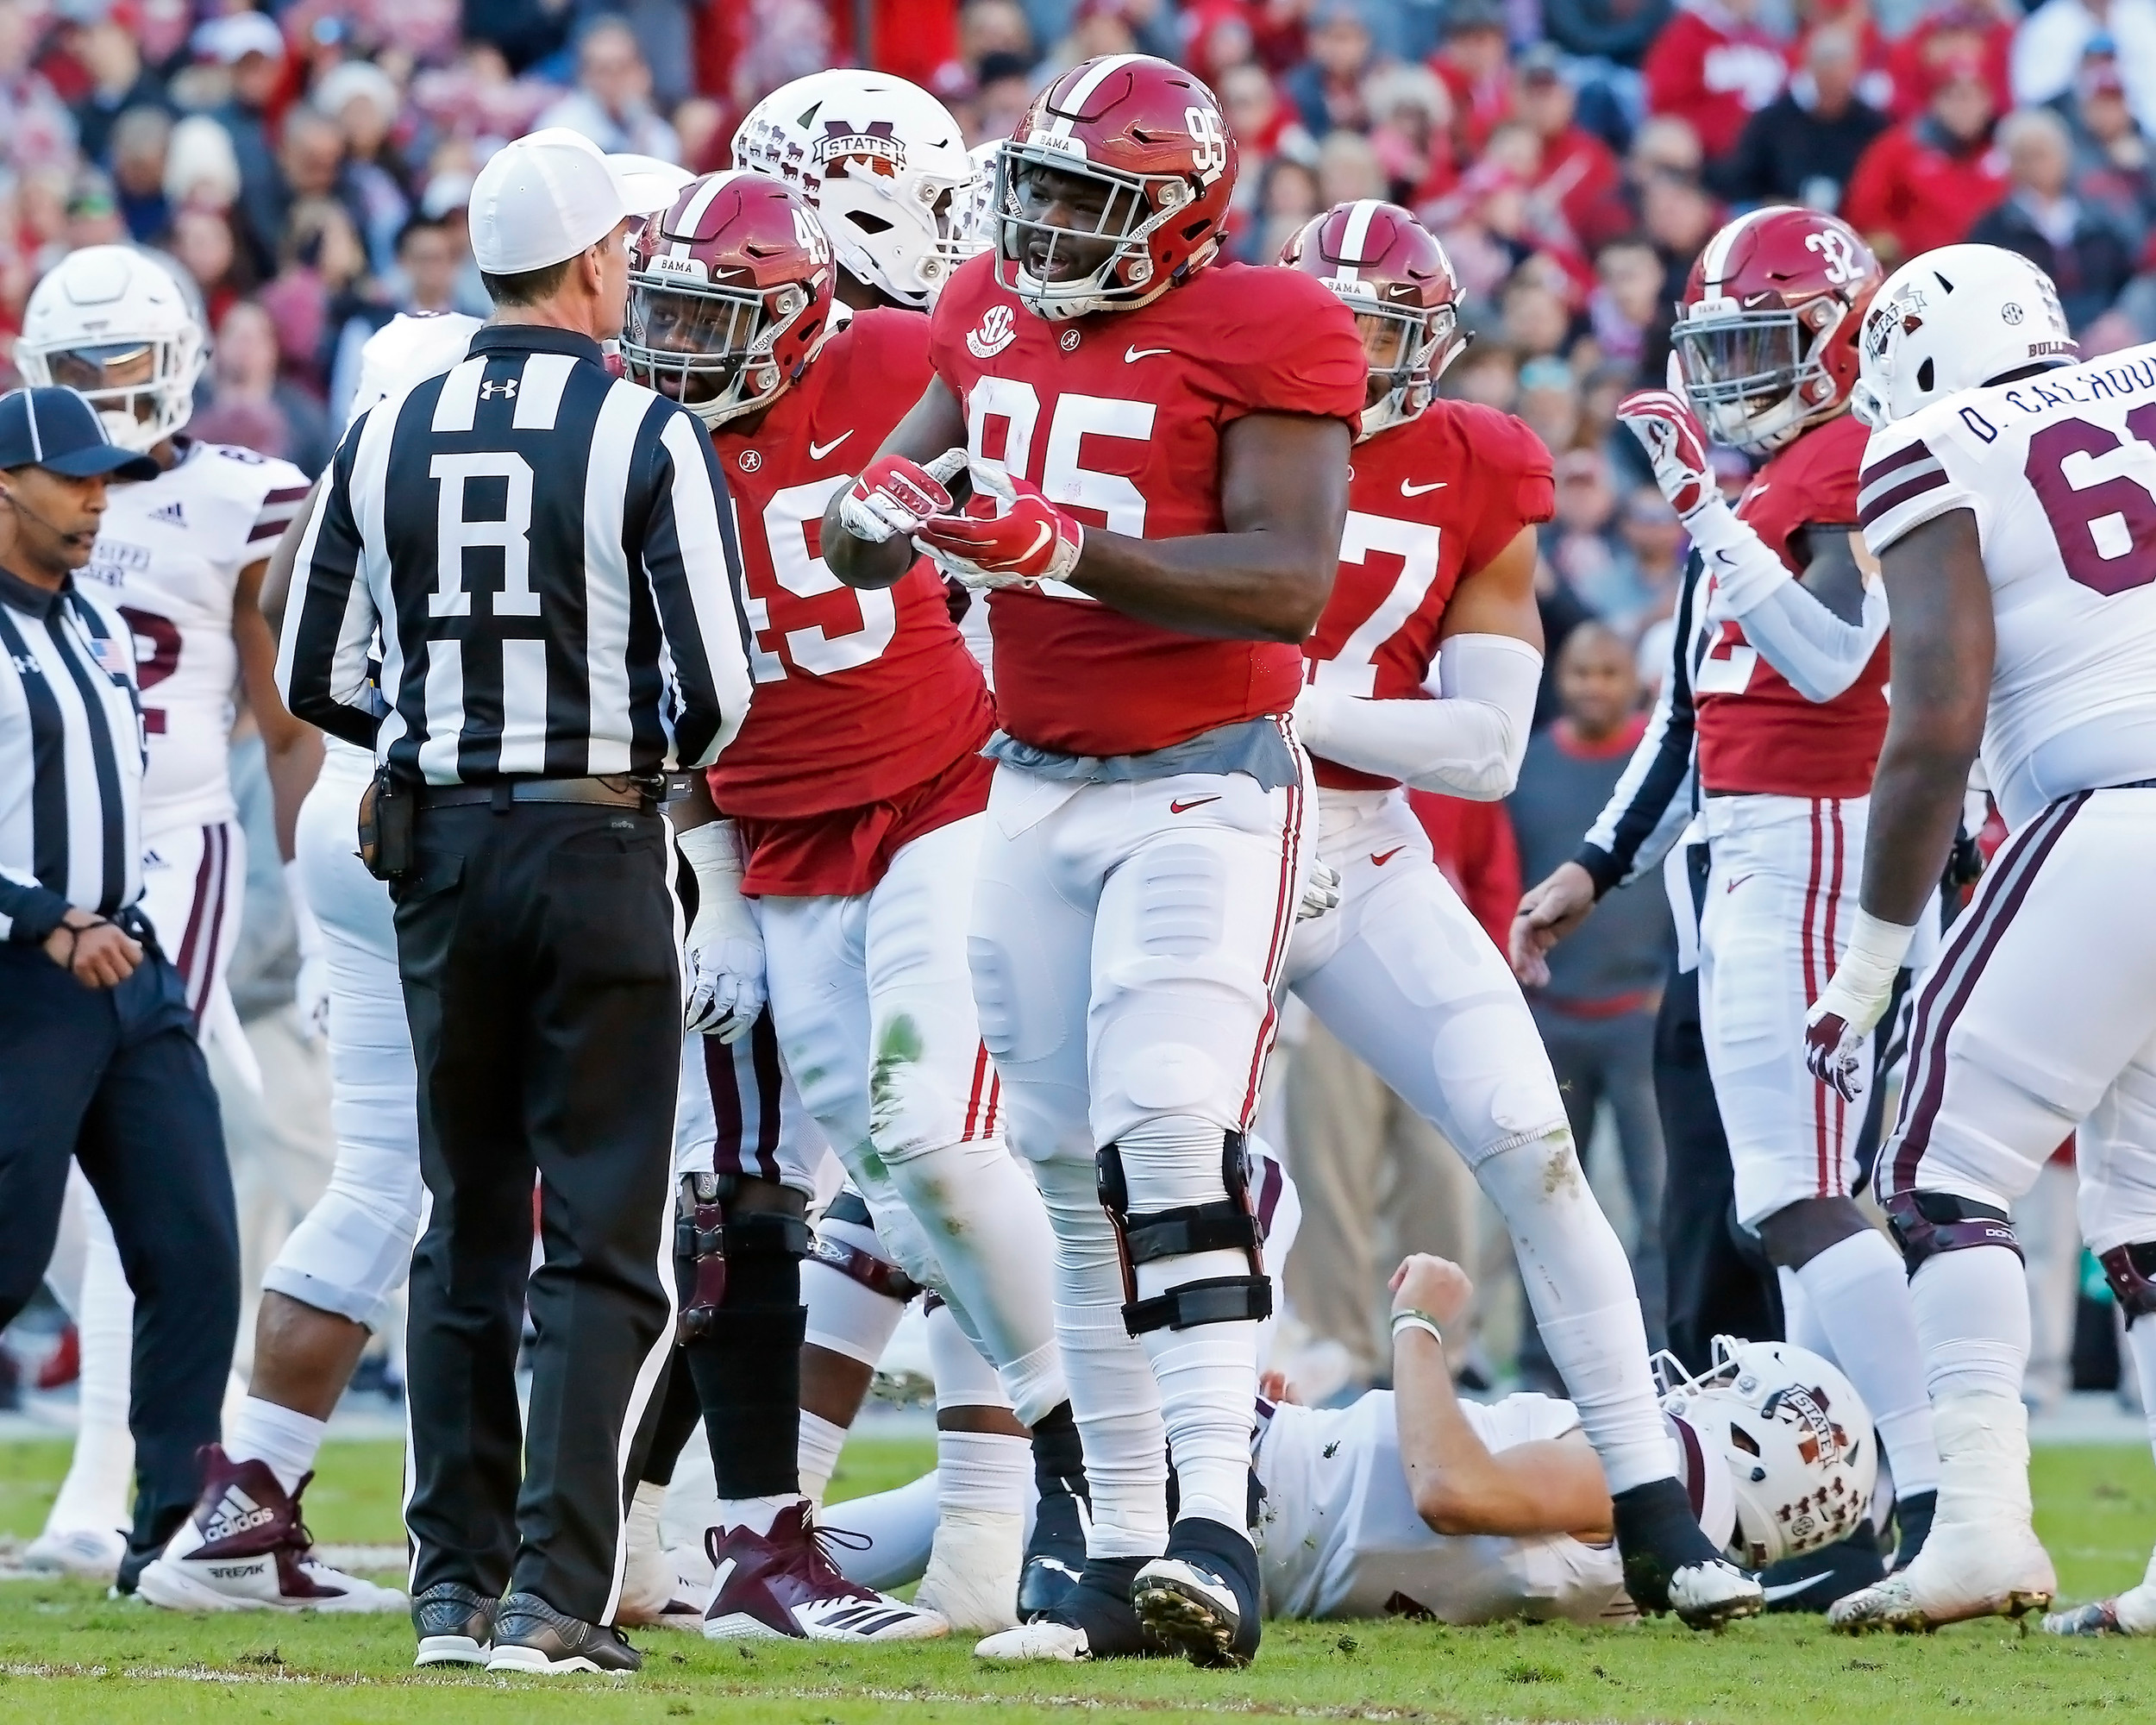 Alabama Crimson Tide defensive lineman Johnny Dwight (95) talks to an official after a play during the game between Mississippi State and the University of Alabama at Bryant-Denny Stadium in Tuscaloosa, Al. Credit: Jason Clark / Daily Mountain Eagle